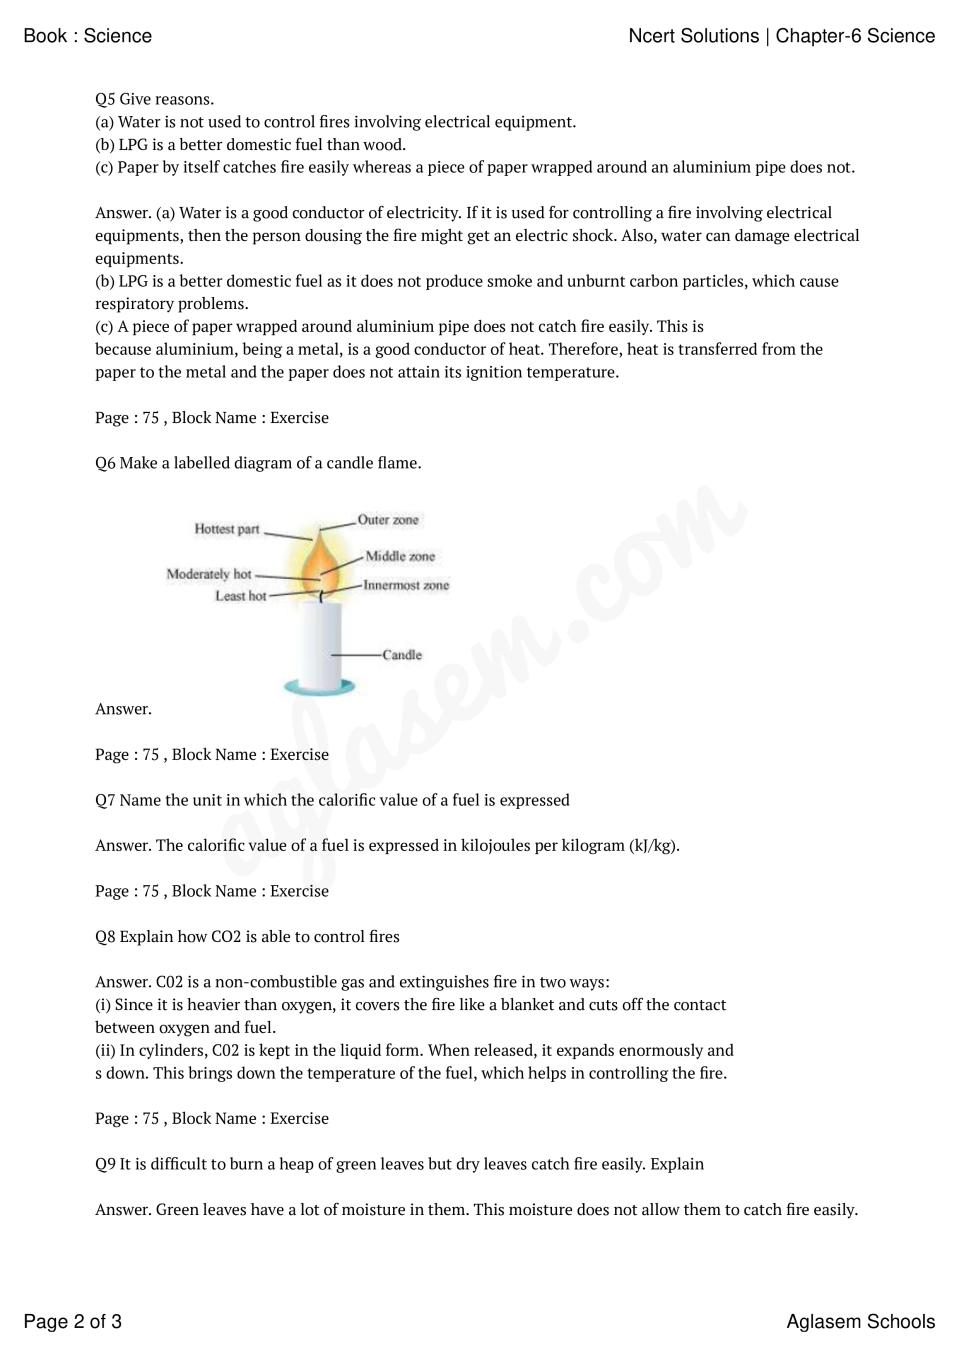 NCERT Solutions for Class 8 Science Chapter 6 Combustion and